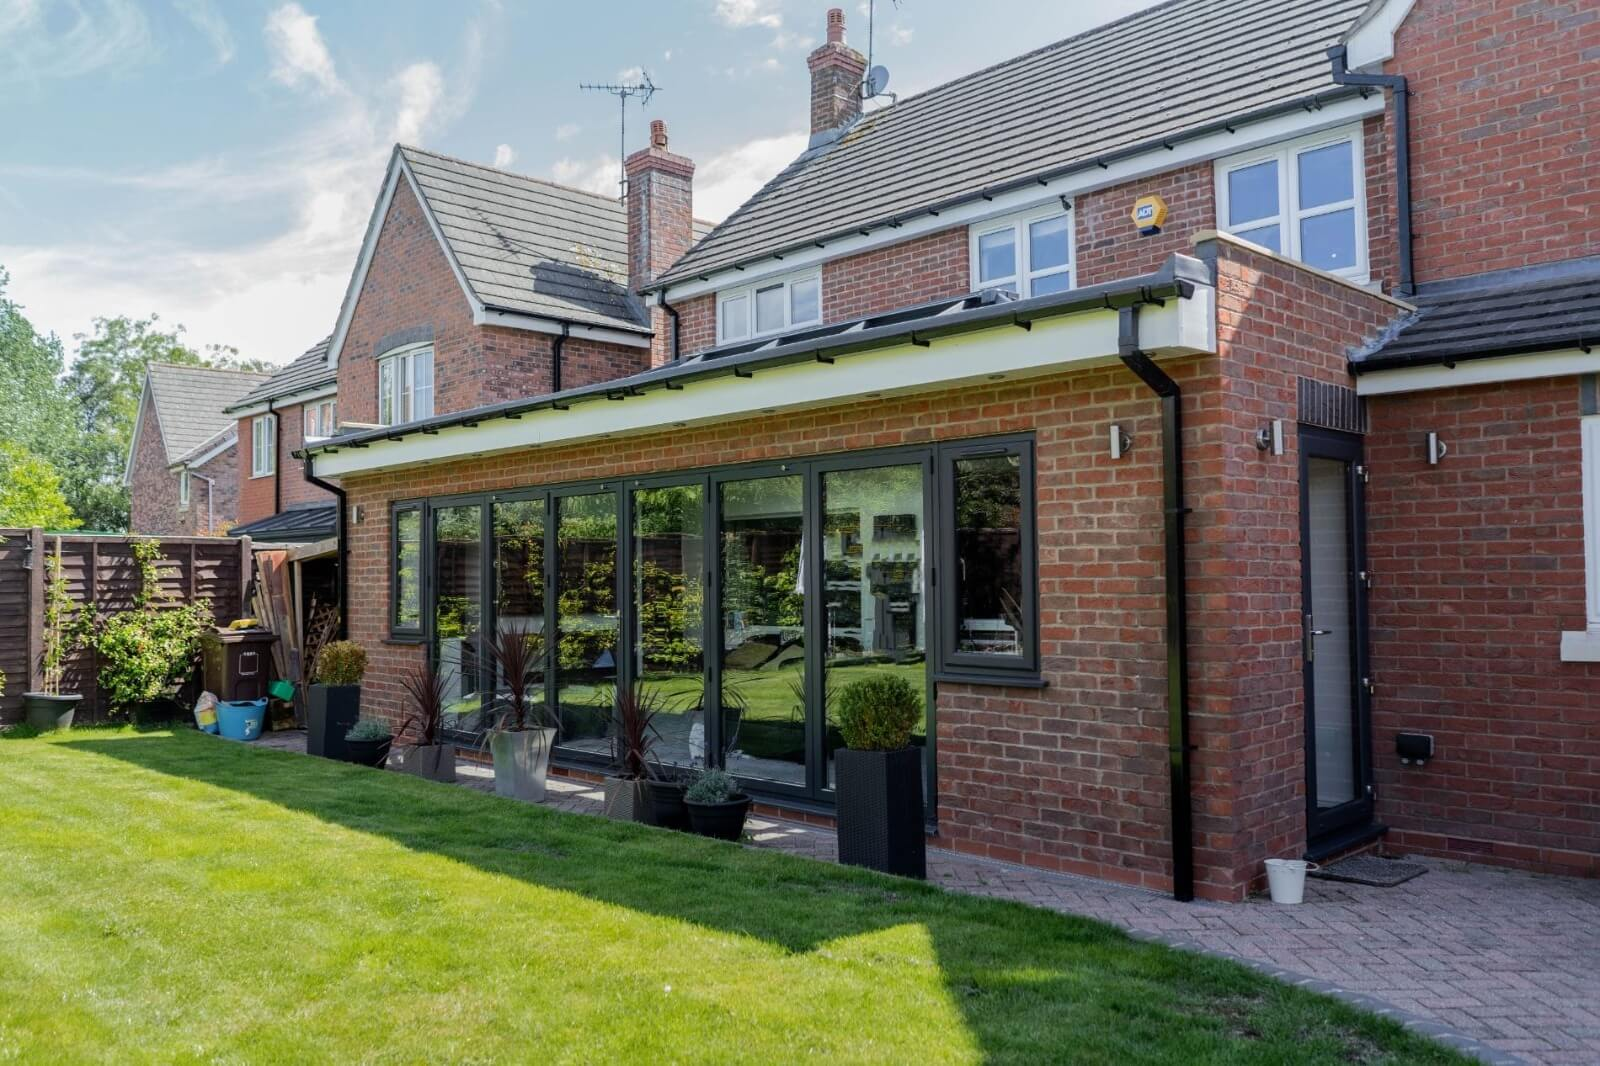 Planning Permission for Conservatories in 2020